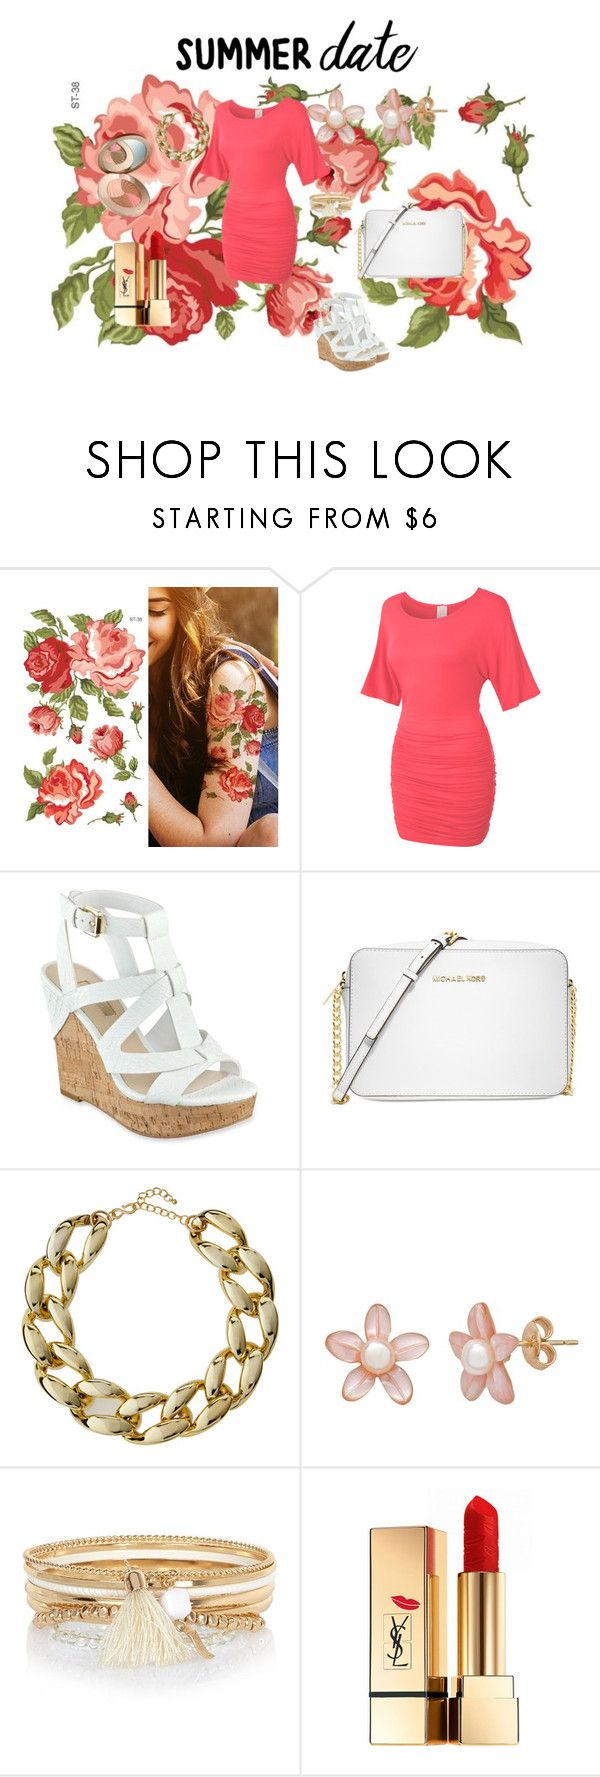 Summer Date by kelly17-kalymnos on Polyvore featuring LE3NO, GUESS, Michael Kors, Kenneth Jay Lane, River Island, Yves Saint Laurent, summerdate and rooftopbar